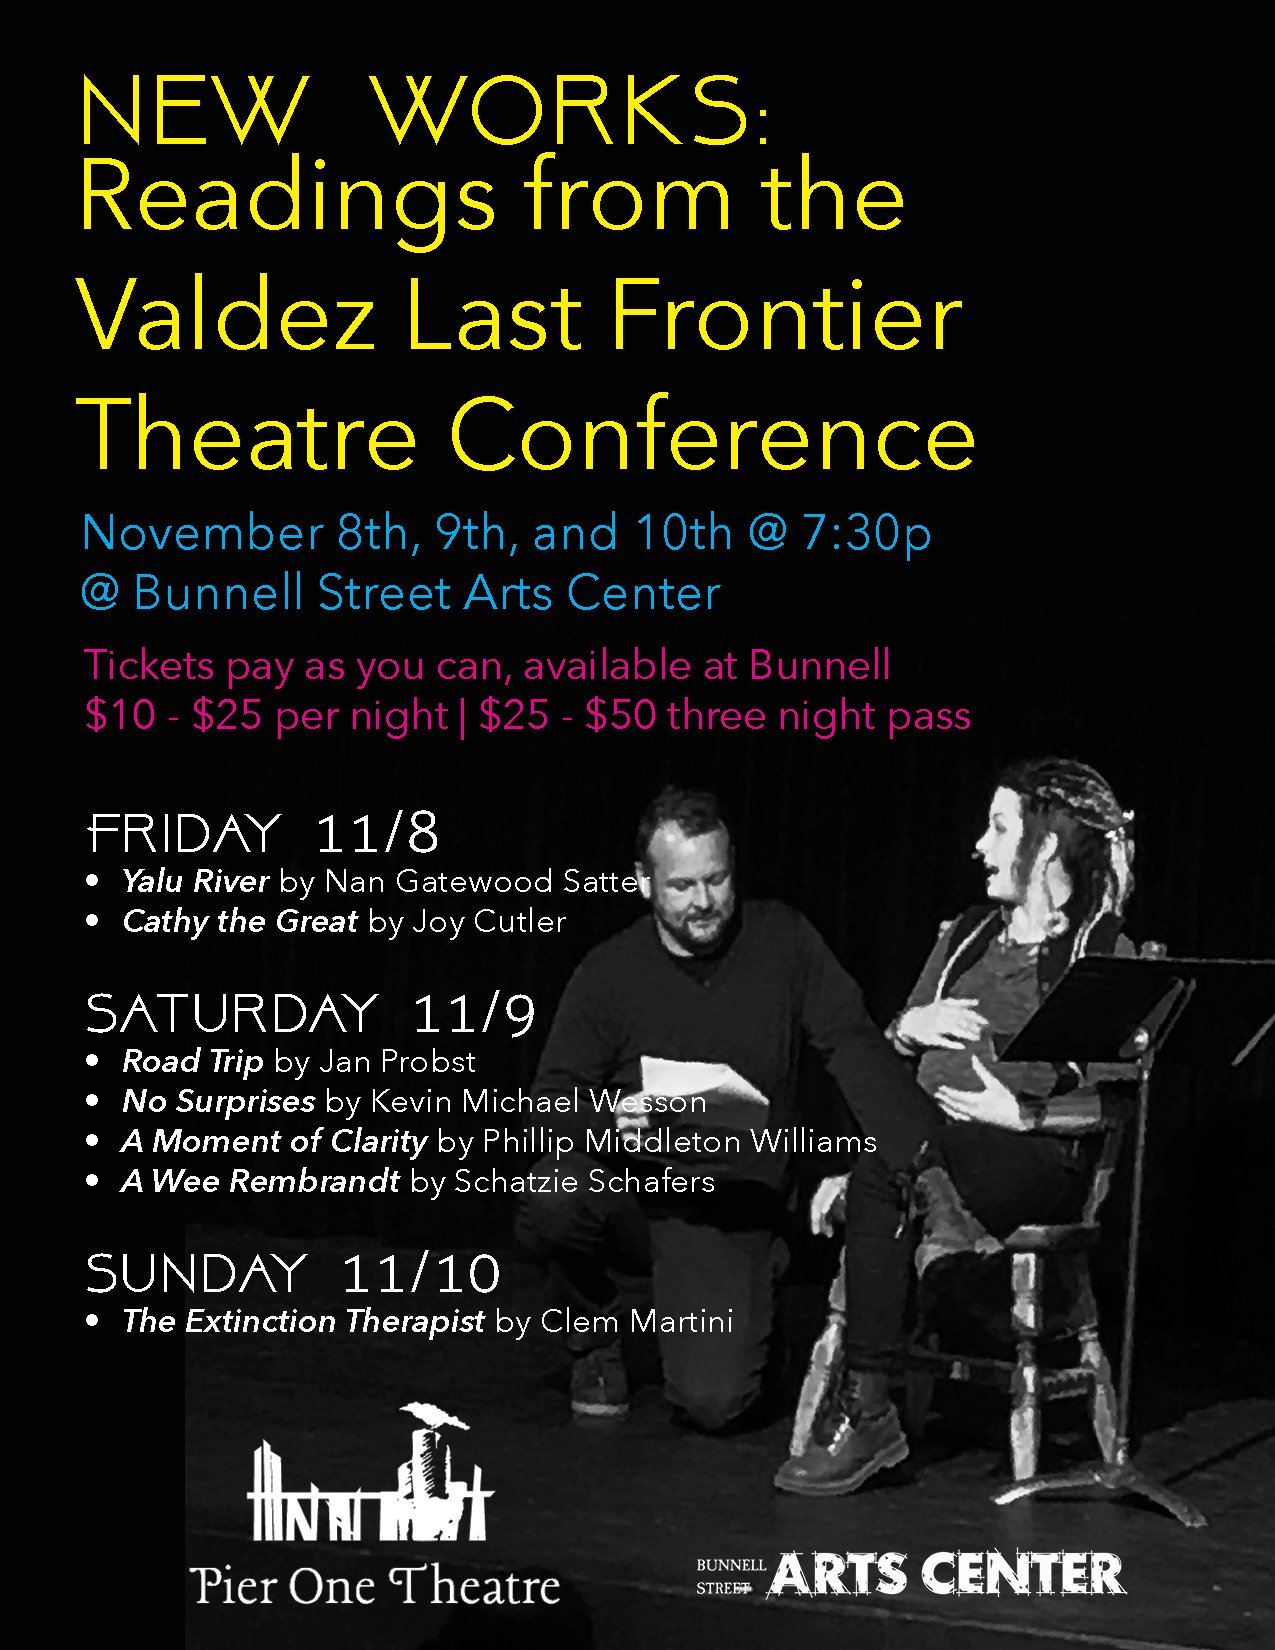 Readings From The Valdez Last Frontier Theatre Conference, 11/8-11/10